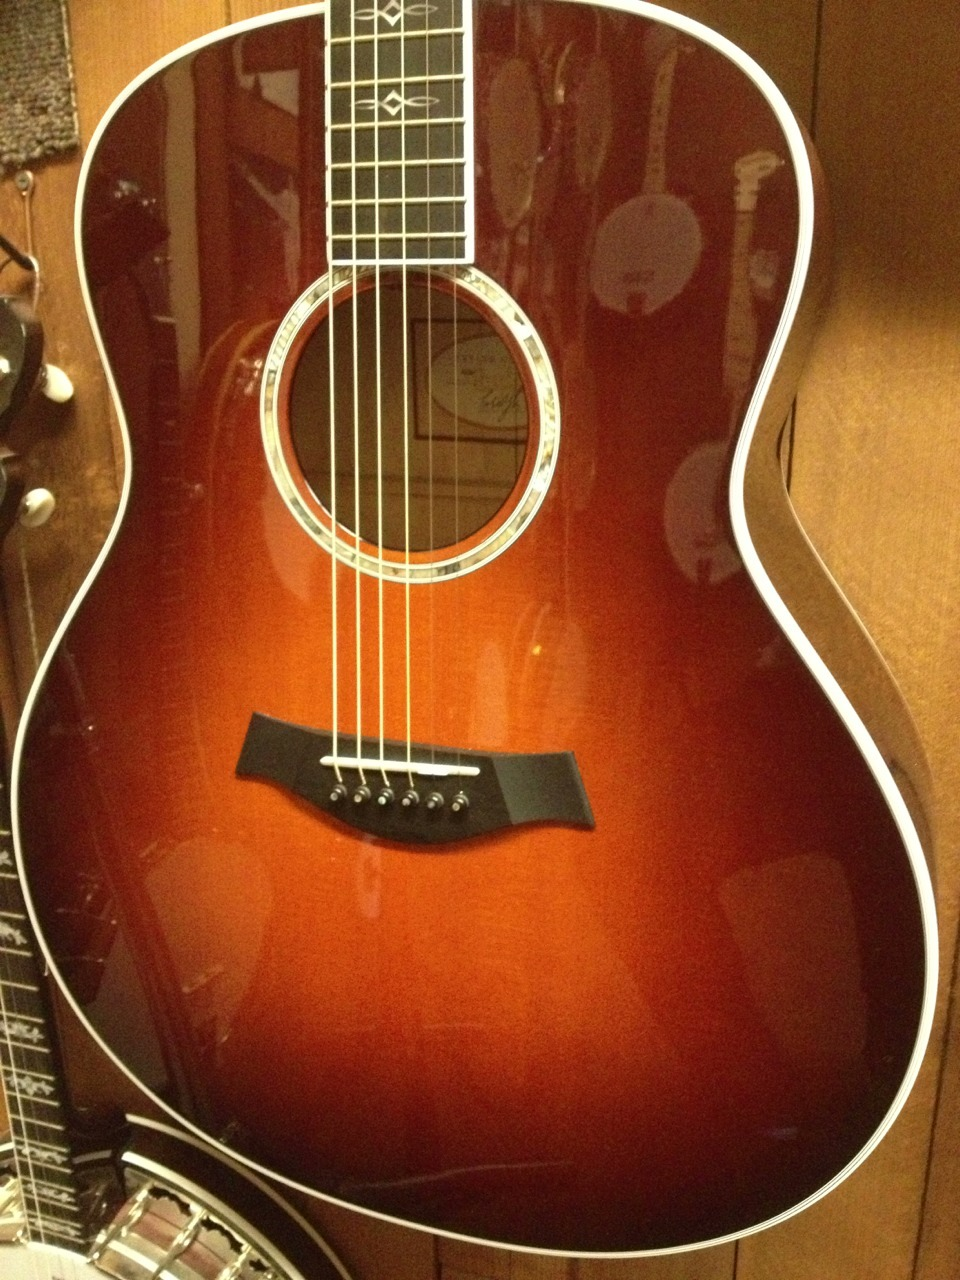 Taylor 618-E Sunburst New w/Case Quilted Maple/Sitka Spruce MSRP: $4439.00 Ours: $3329.00